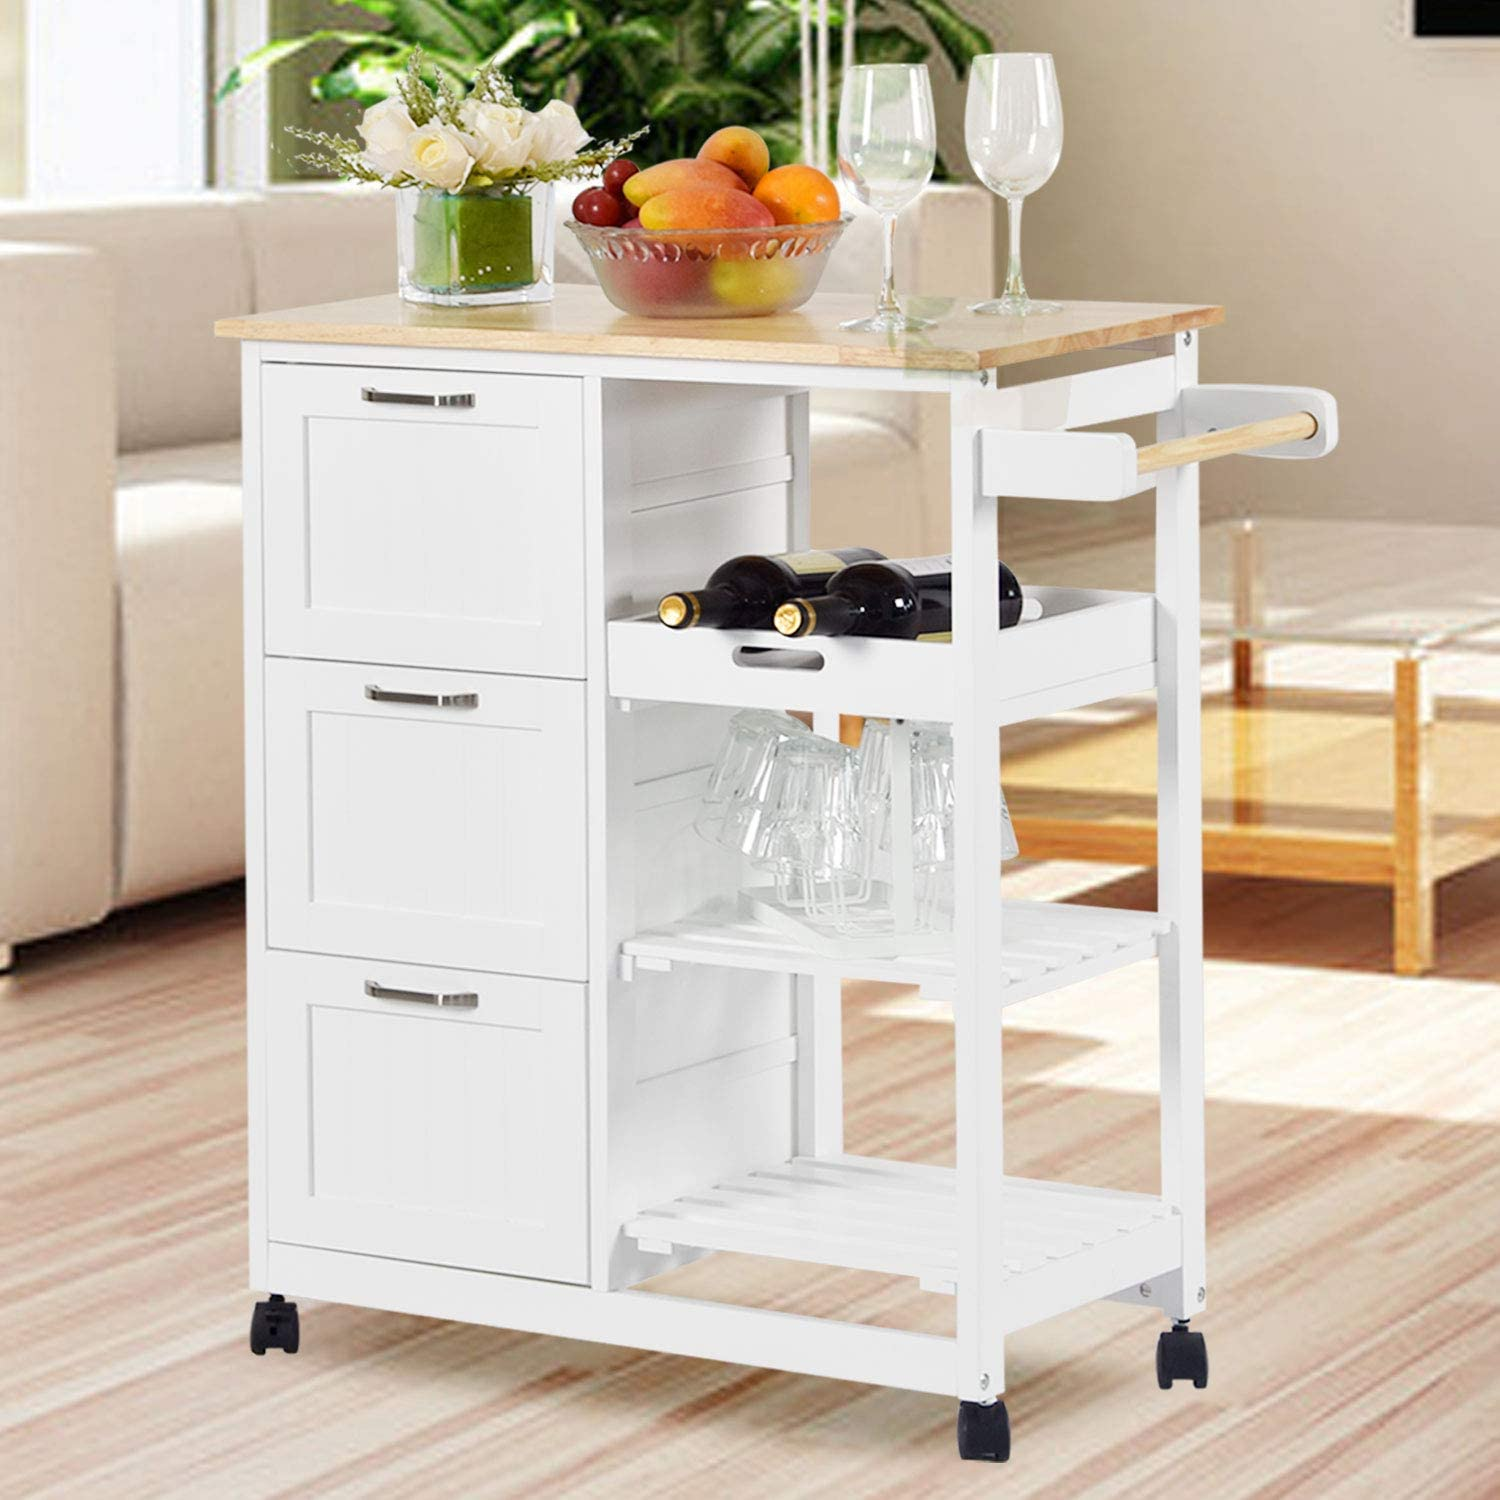 NSdirect Kitchen Island Cart,Industrial Kitchen Bar&Serving Cart Rolling Utility Storage Cart with 3-Tier Wine Rack Shelves&Three Storage Drawers,Soild Rubber Wood Top